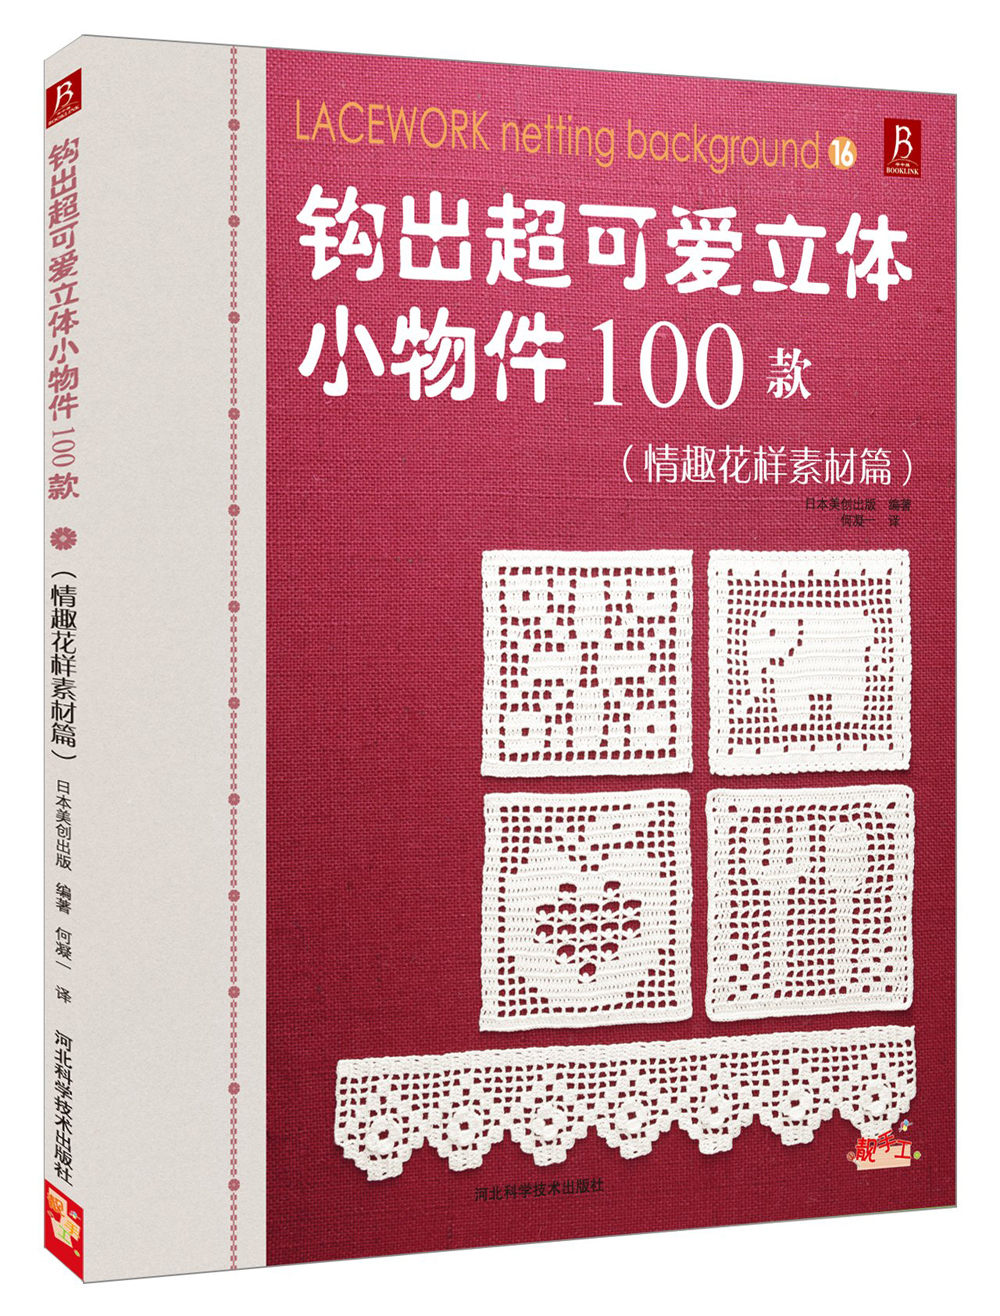 LACEWORK netting background/ Weaving super-cute 3d small objects 100 models Chinese knitting book 100 super cute little embroidery chinese embroidery handmade art design book